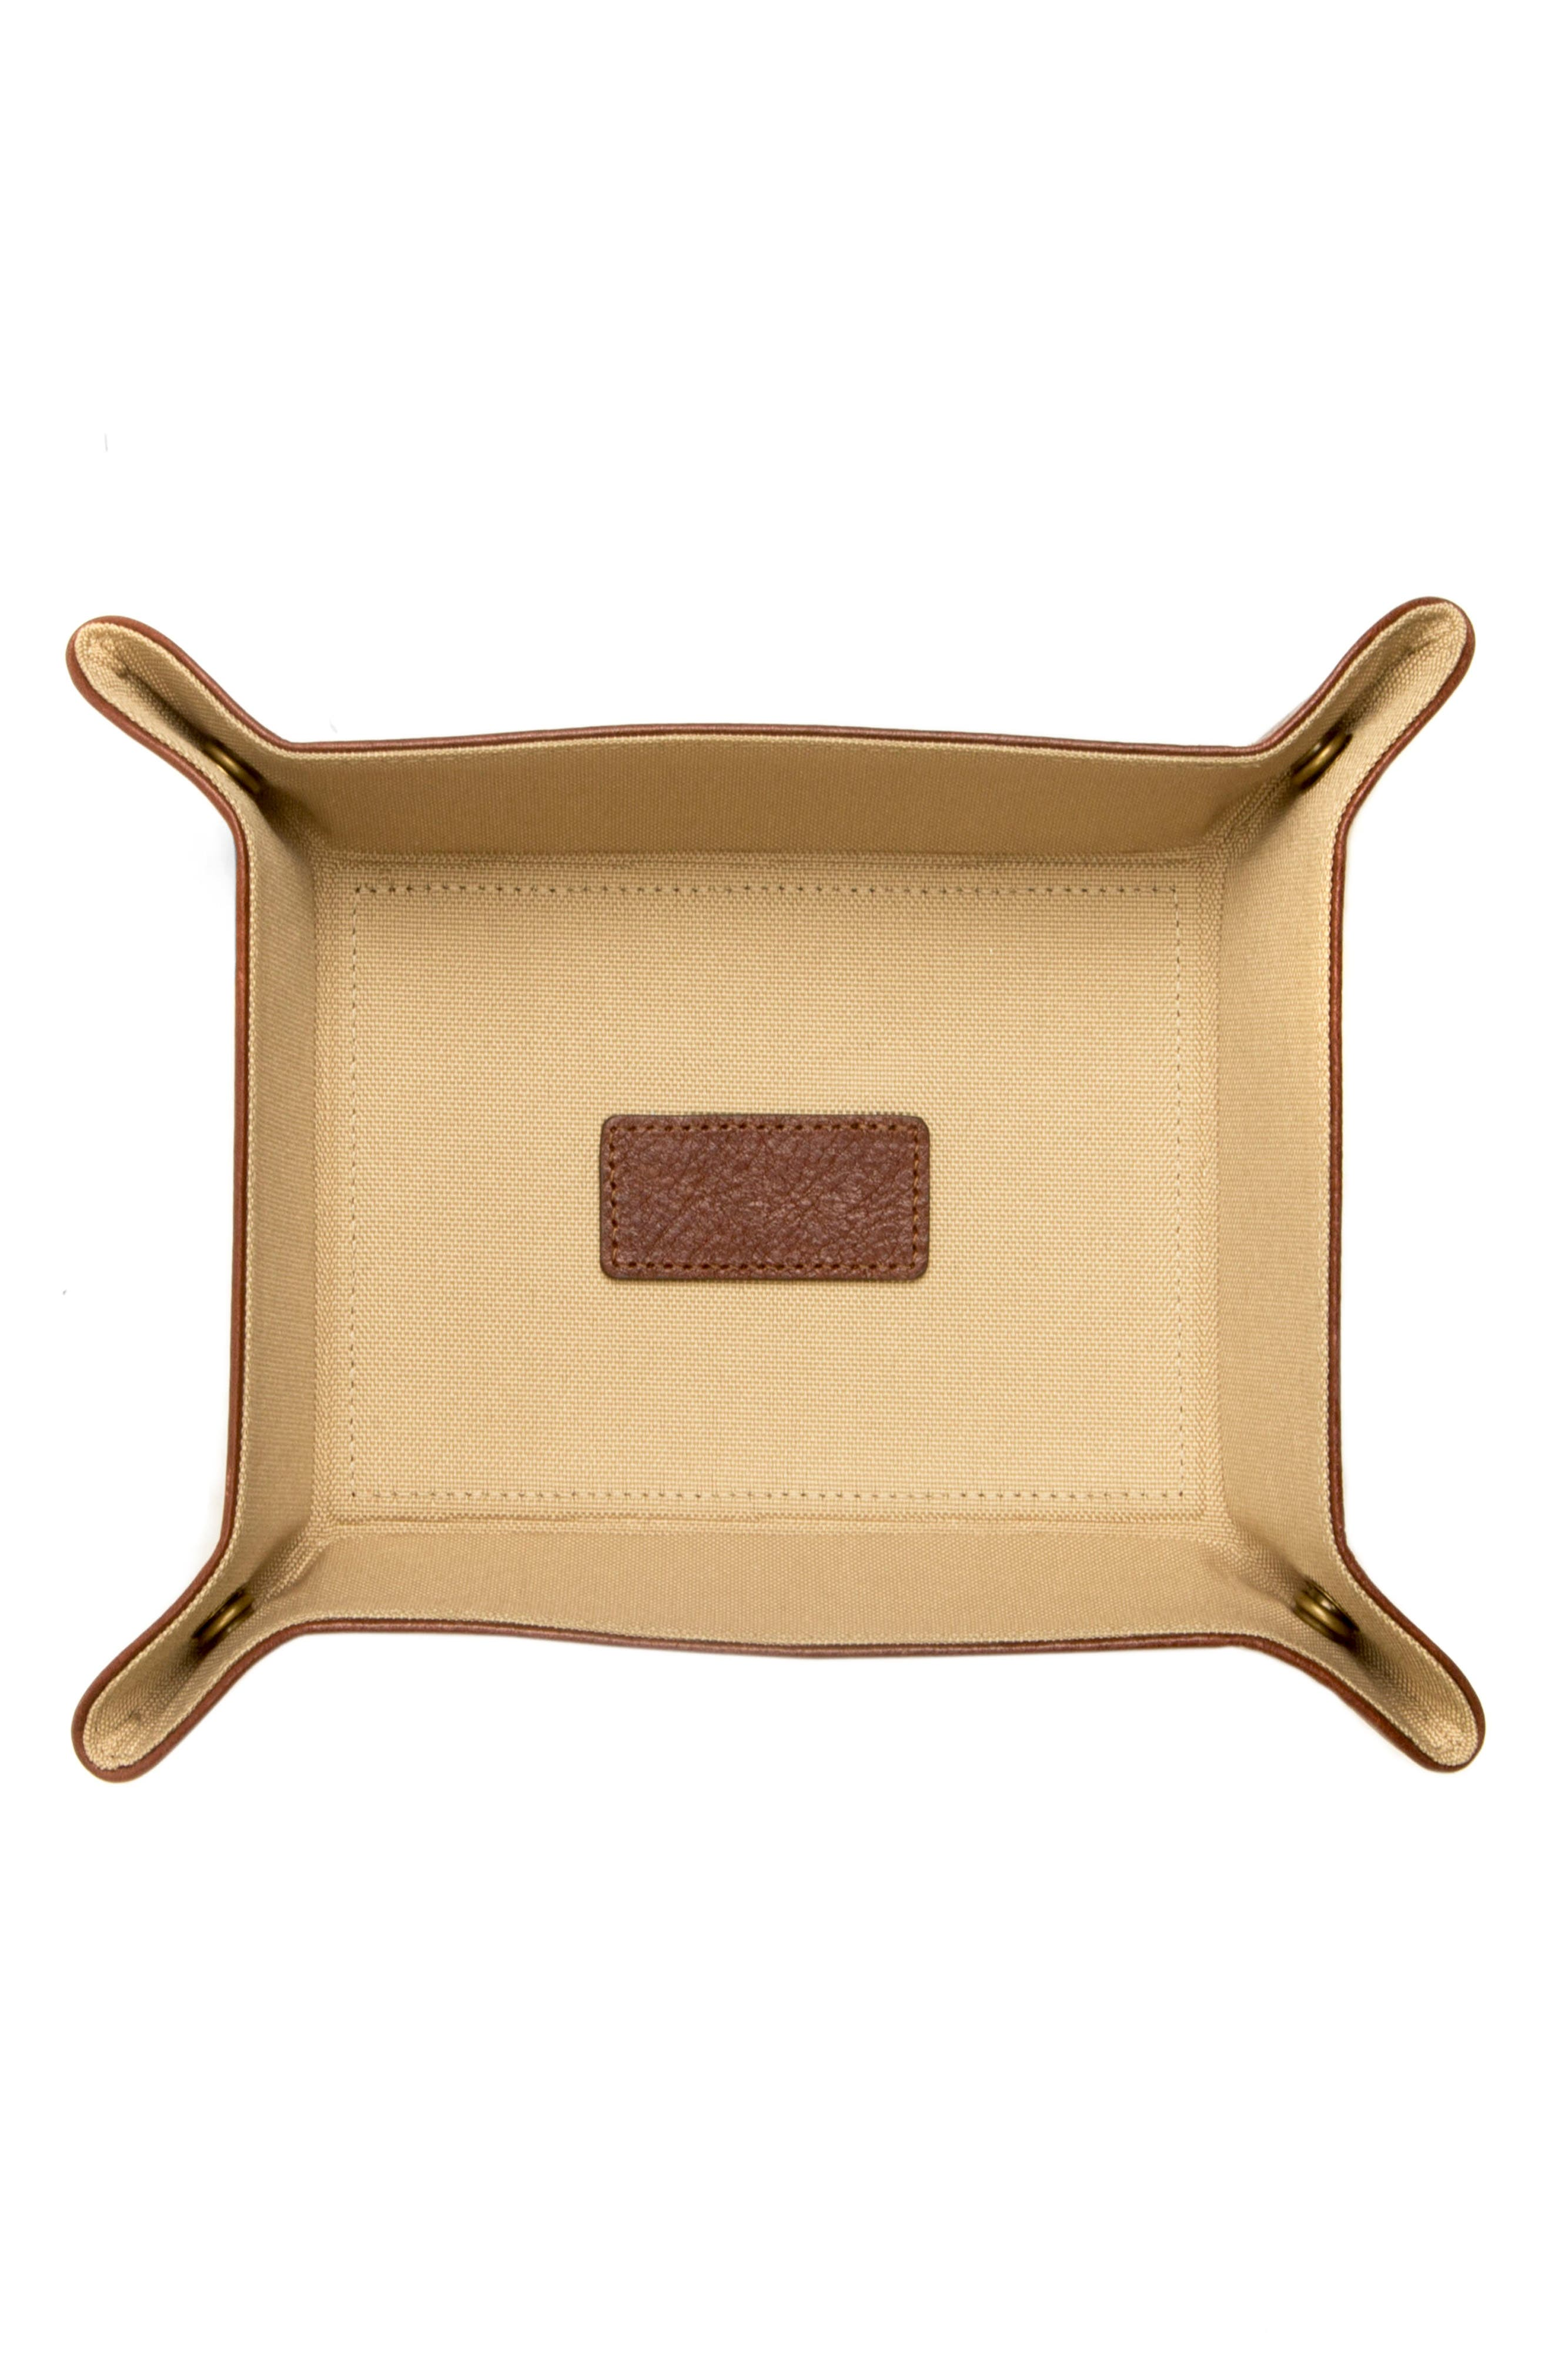 Becker Catchall Tray,                             Alternate thumbnail 2, color,                             Whiskey